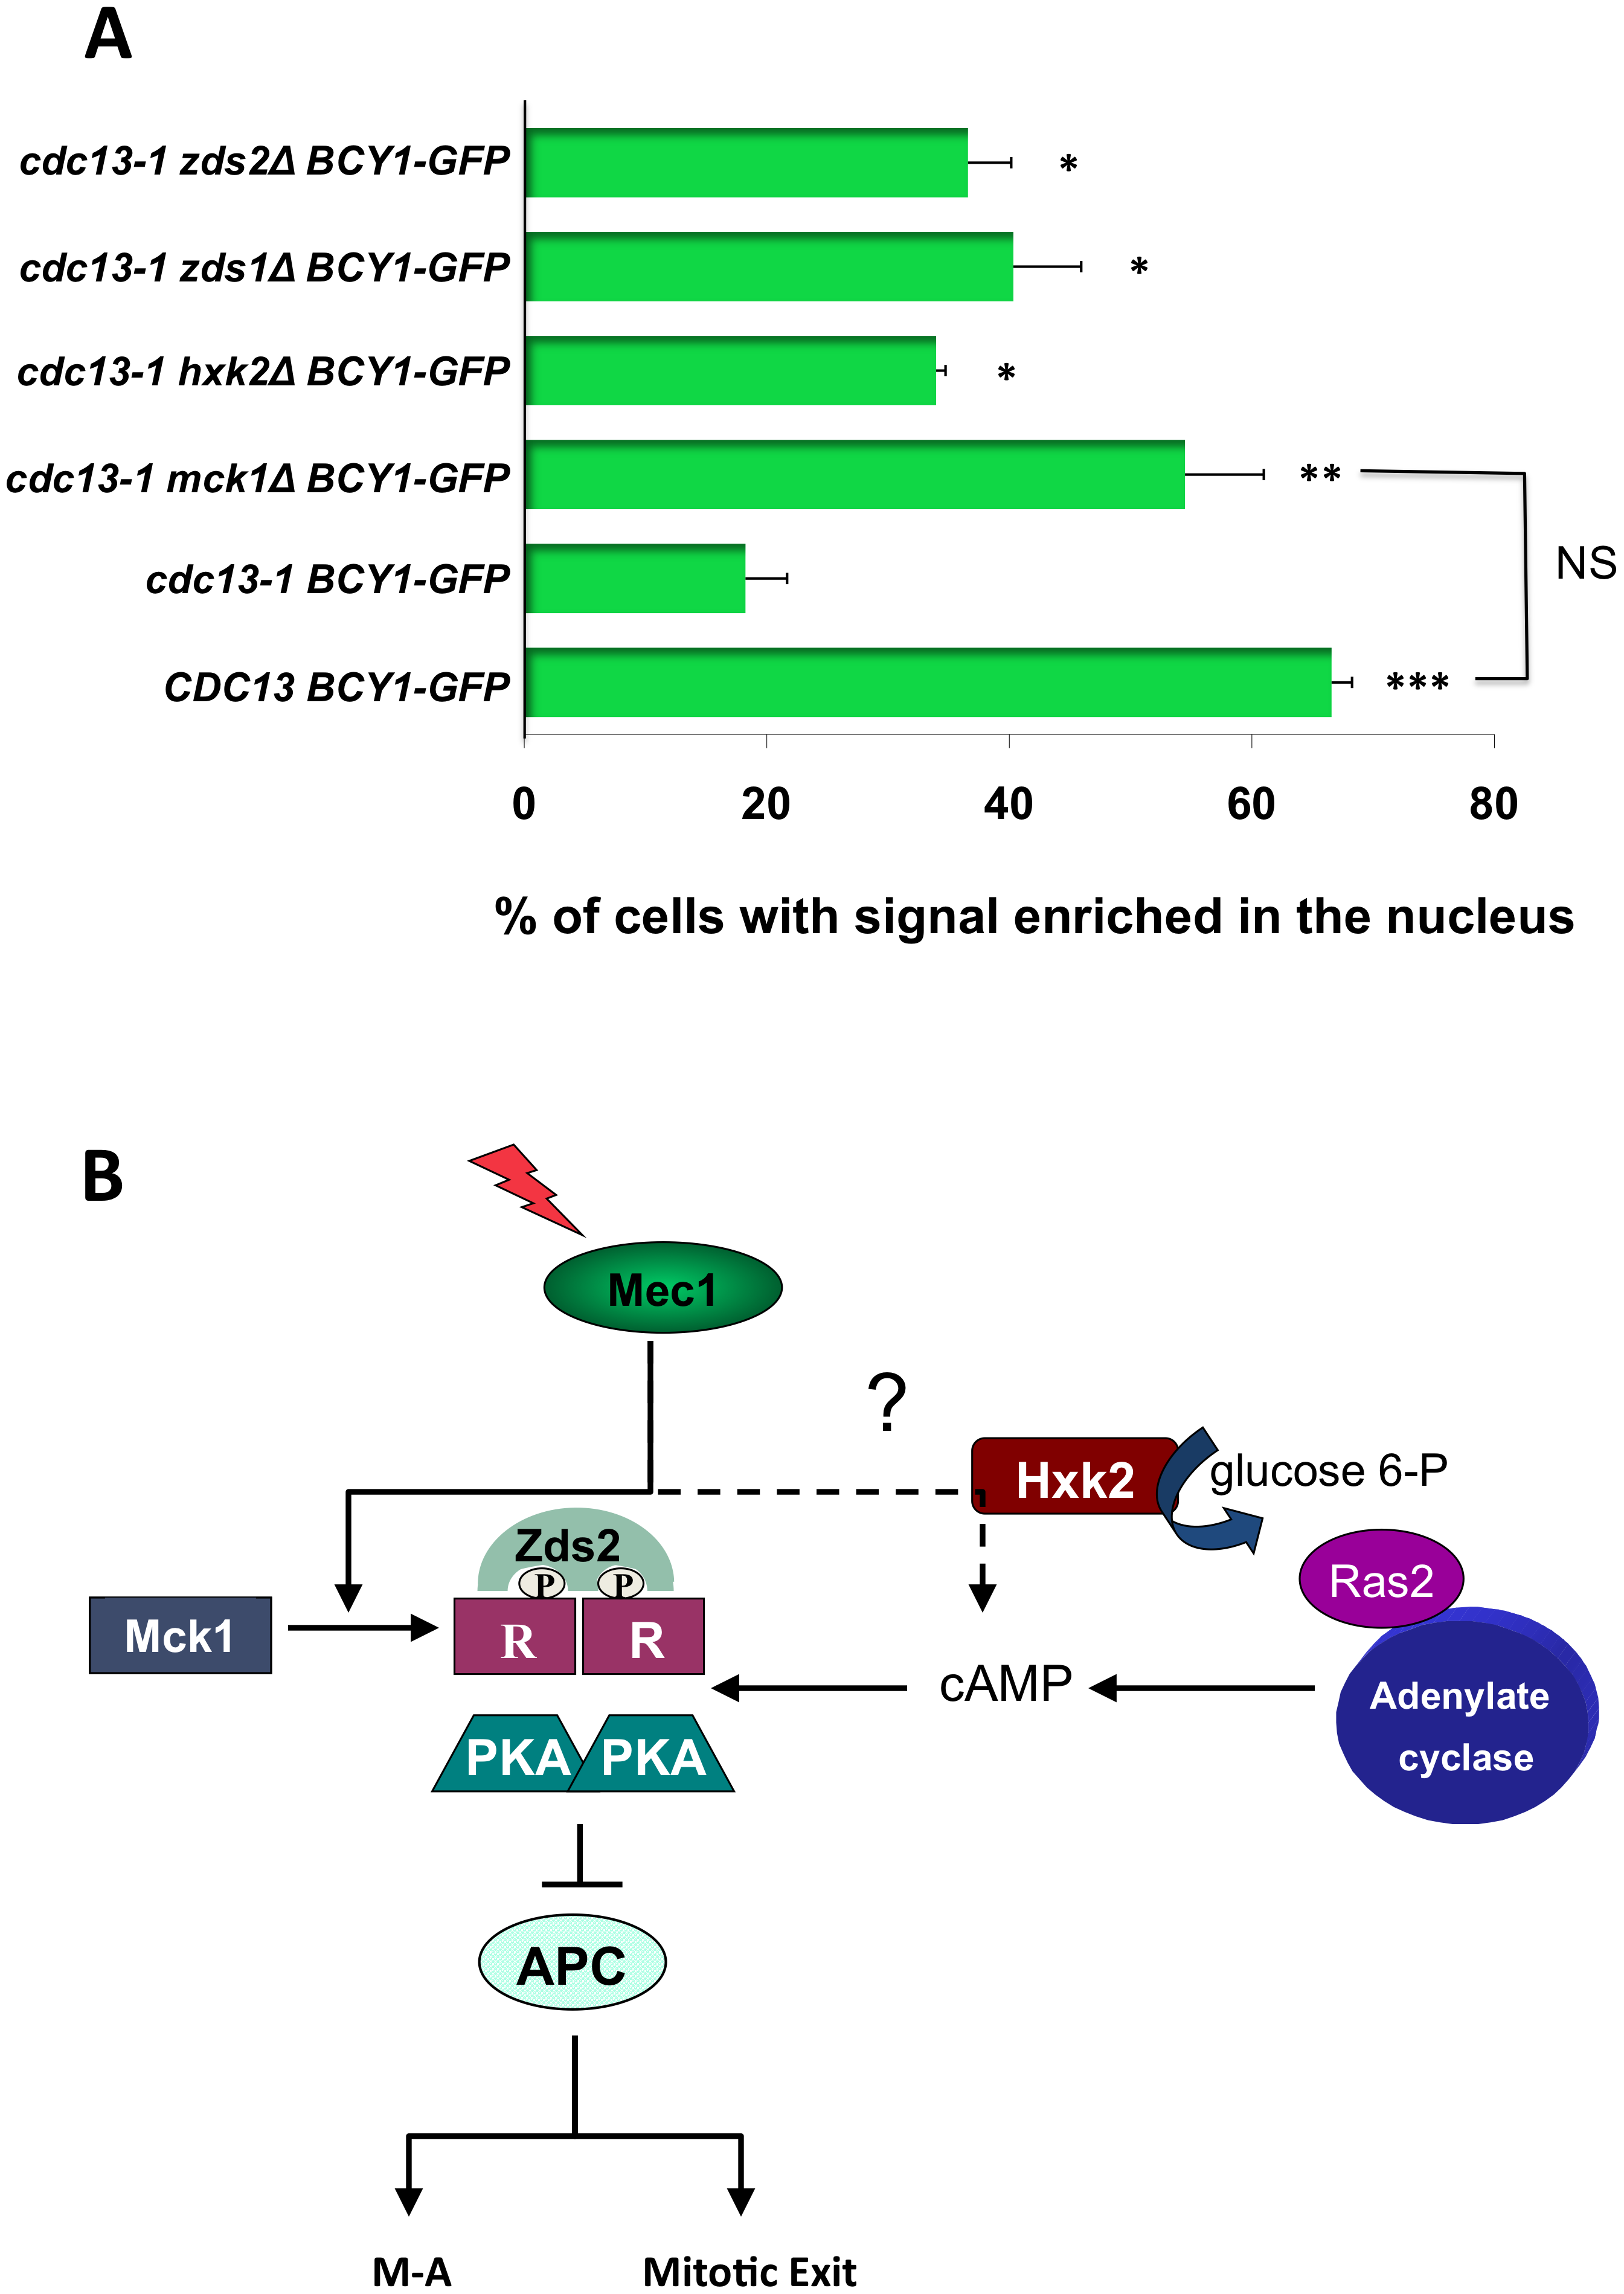 Mck1, Zds1, Zds2, and Hxk2 are required for R subunit re-localization after DNA damage.